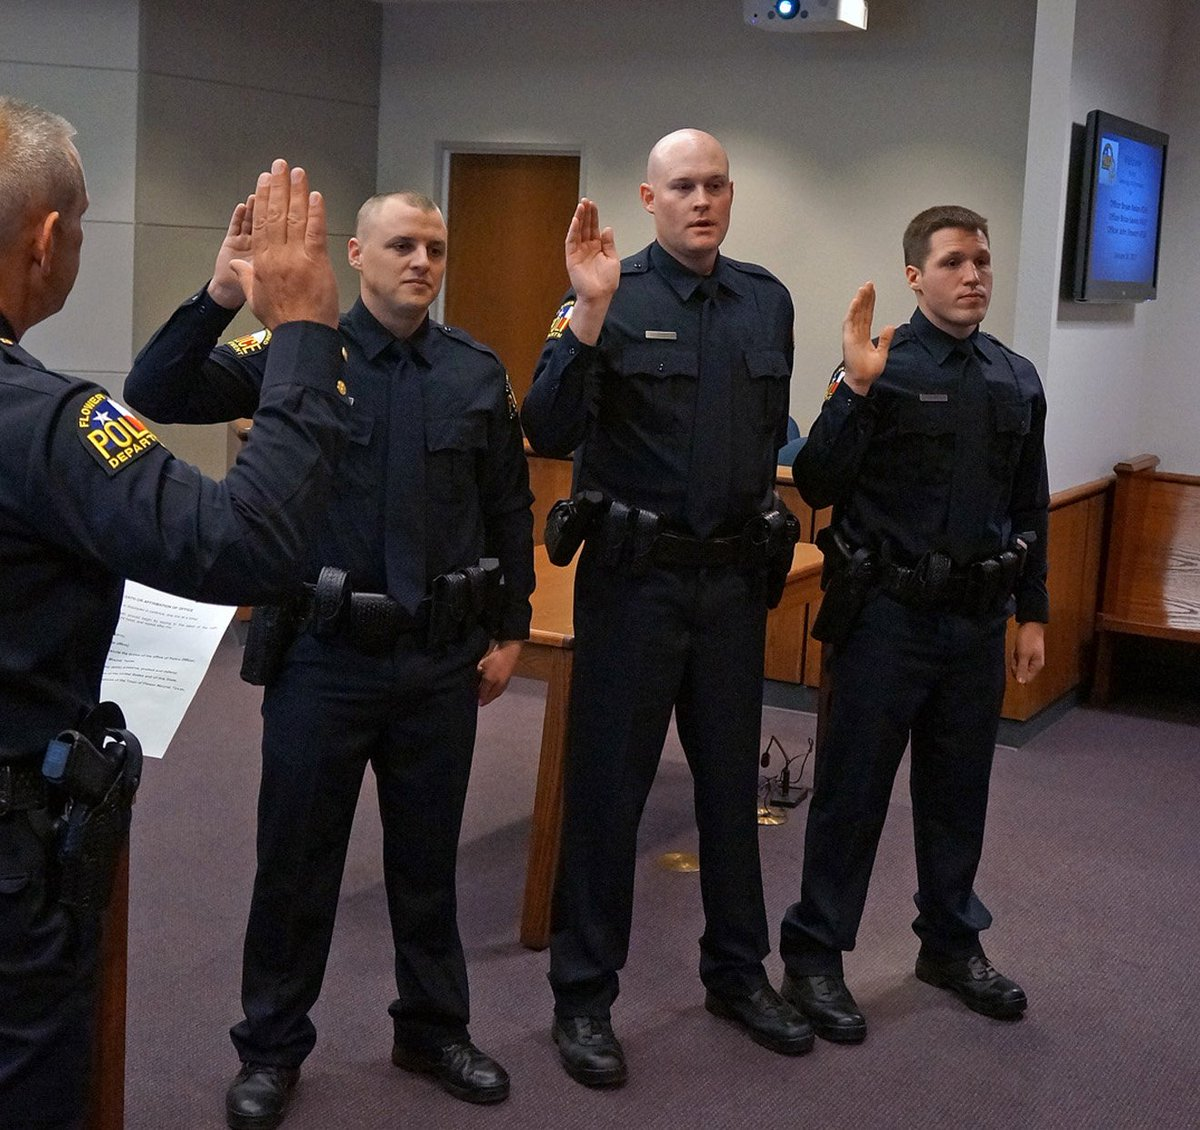 """Flower Mound PD on Twitter: """".@FMPDChief Andy Kancel swore in three new members to the FMPD family, today. Welcome Officer Sauter, Officer Stewart, ..."""